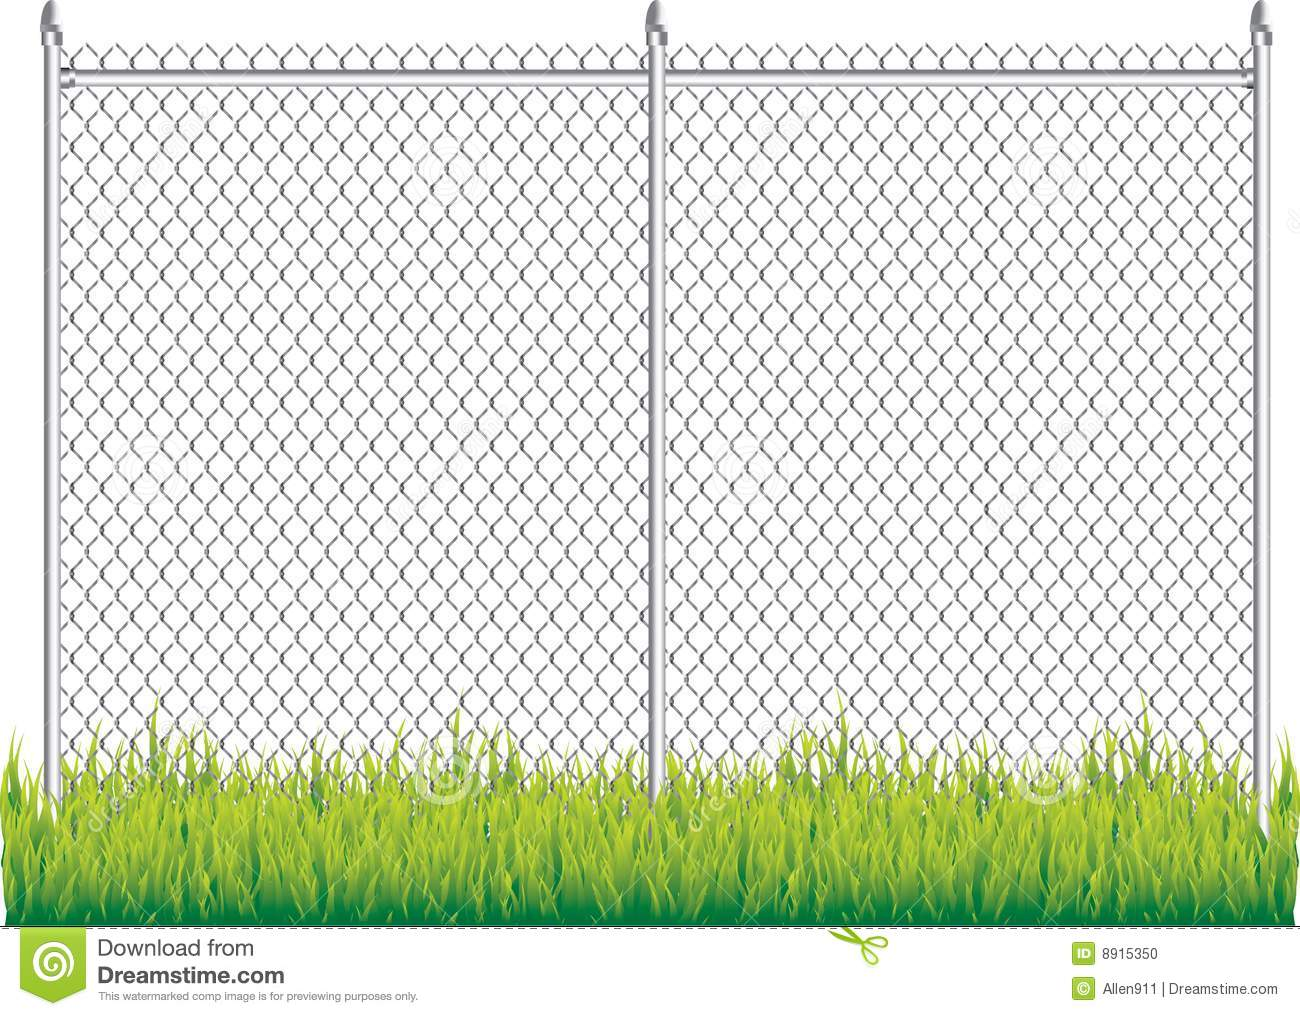 Cartoon wire fence pixshark images galleries